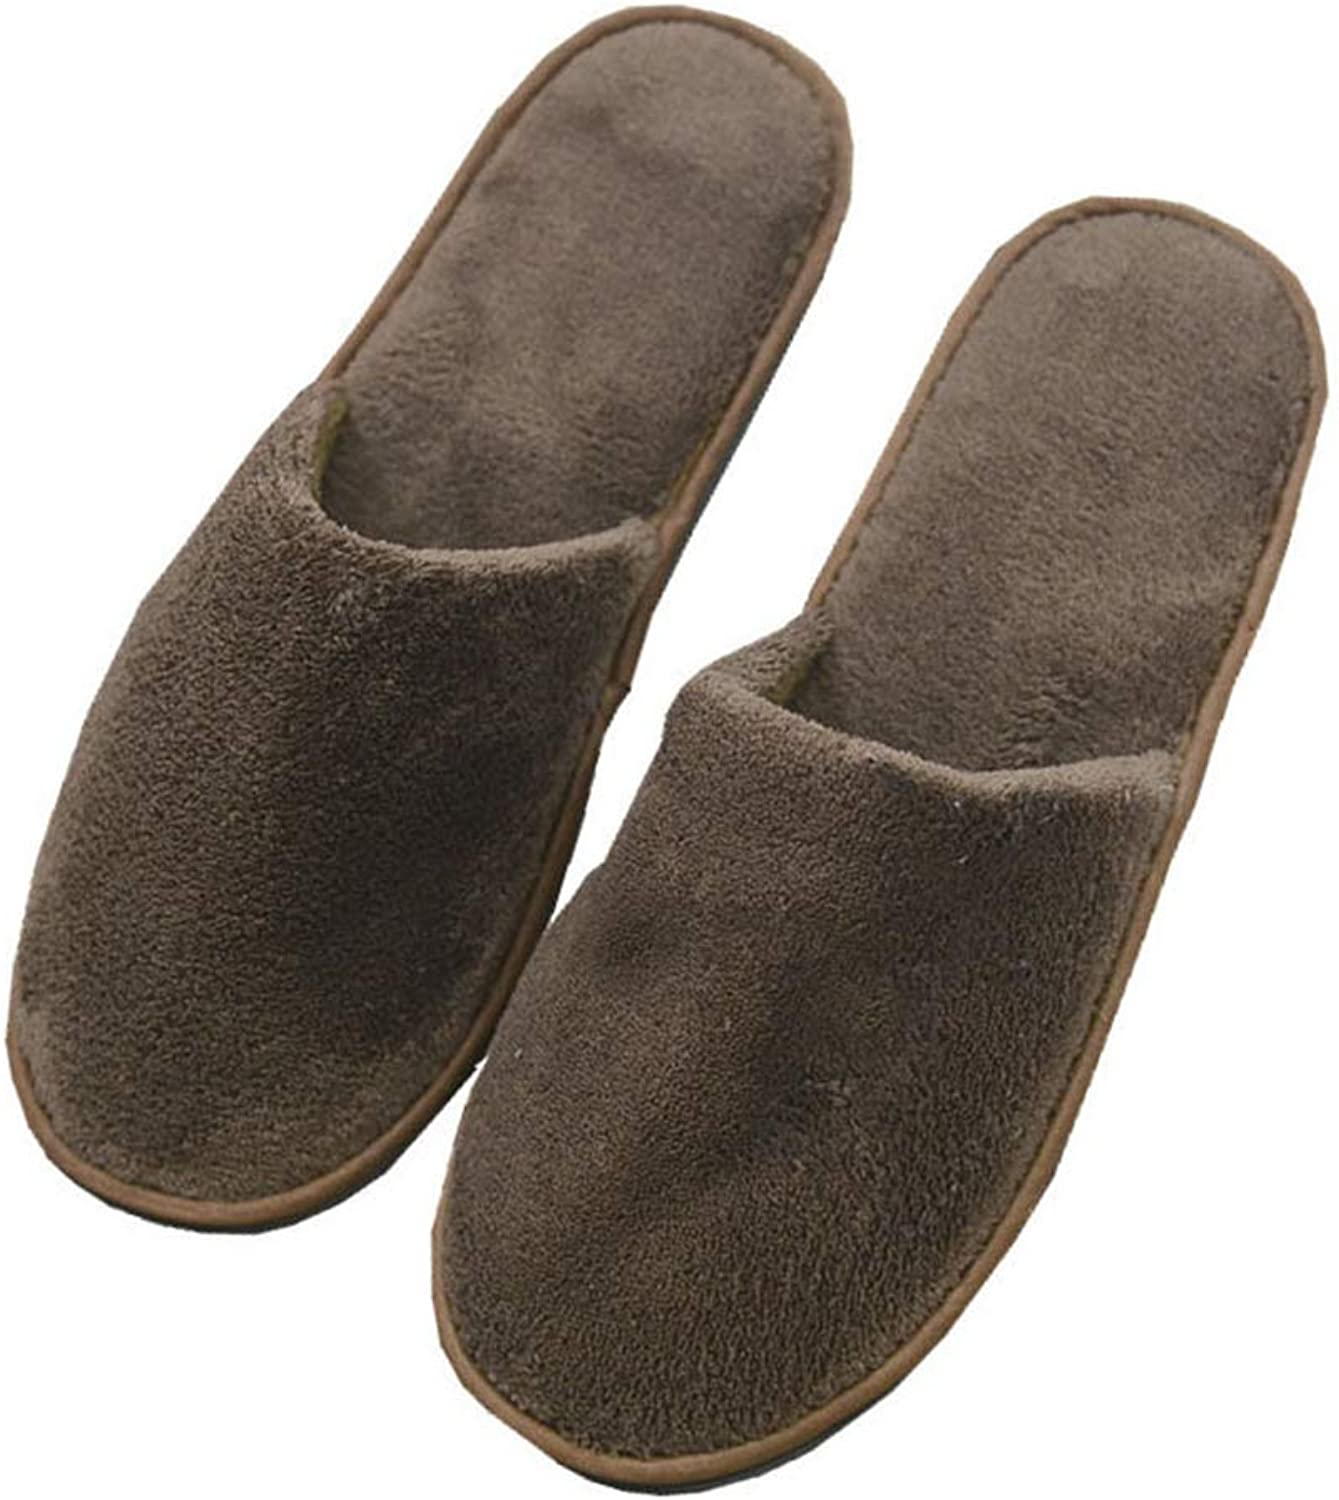 Hotel Spa Slippers, Closed Toe Disposable Indoor Slippers for Men and Women, Fluffy Coral Fleece for Extra Comfort, 39-44,50pairs